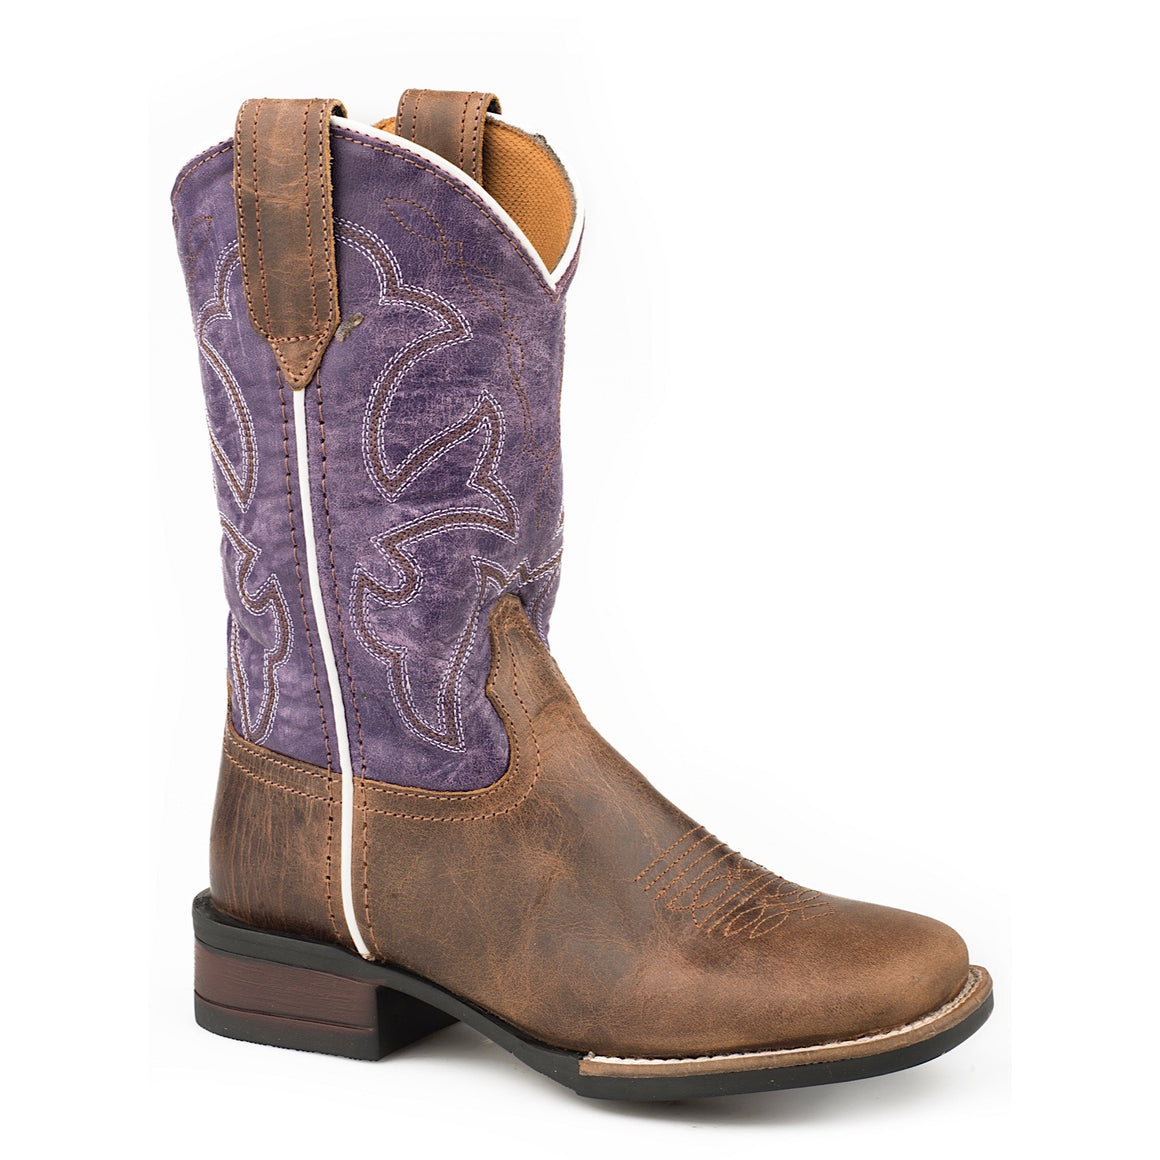 Roper Little Kids Monterey Leather Western Boots Brown/Purple